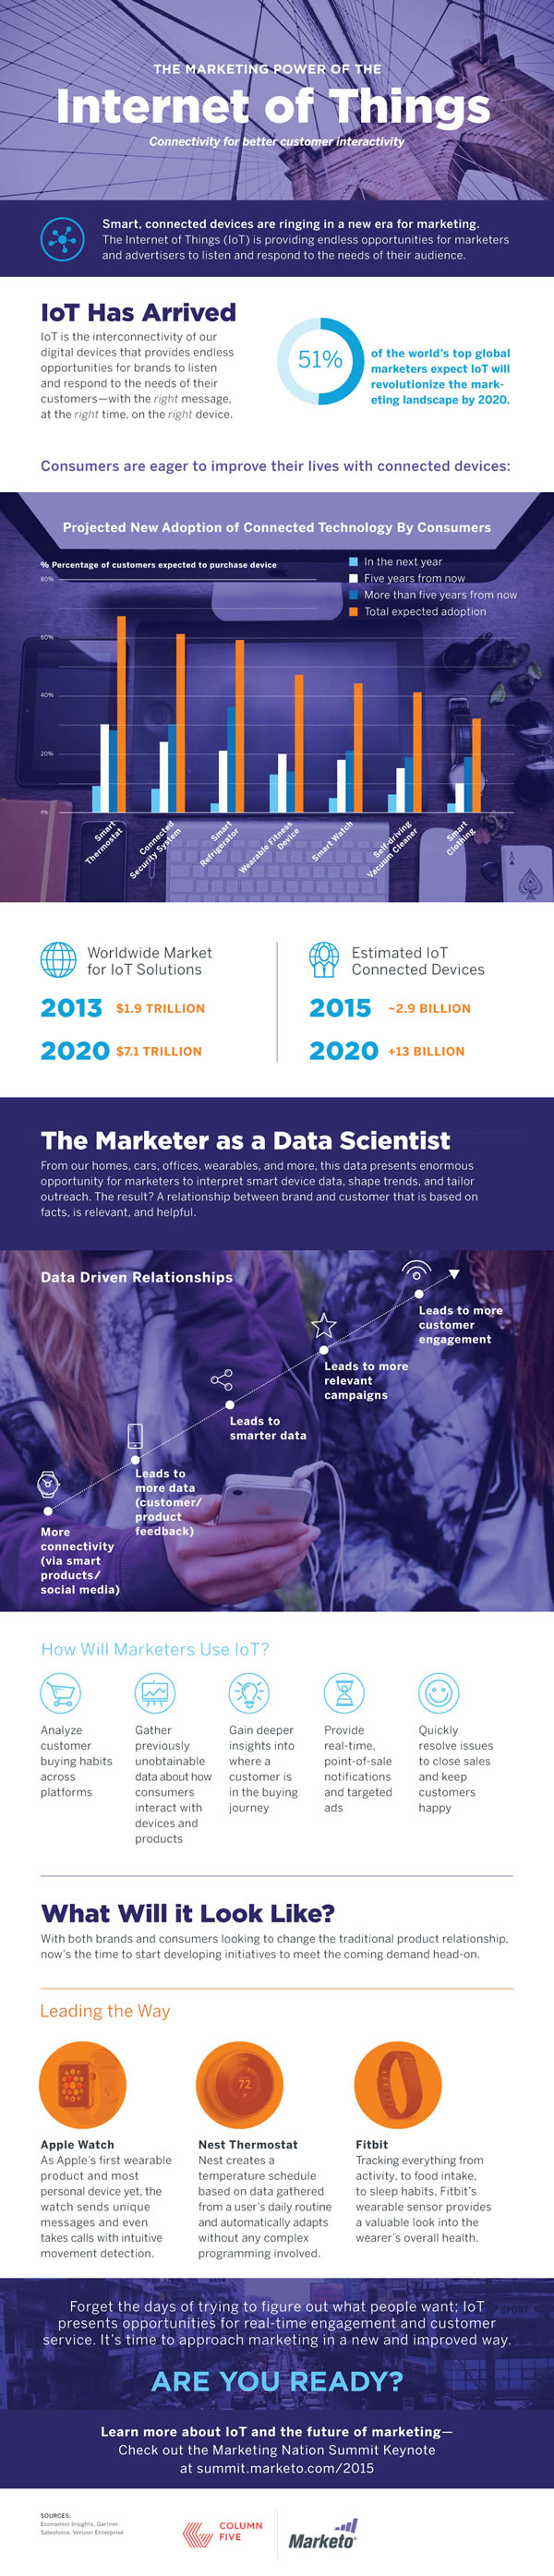 The Internet of Things in marketing - infographic by Marketo